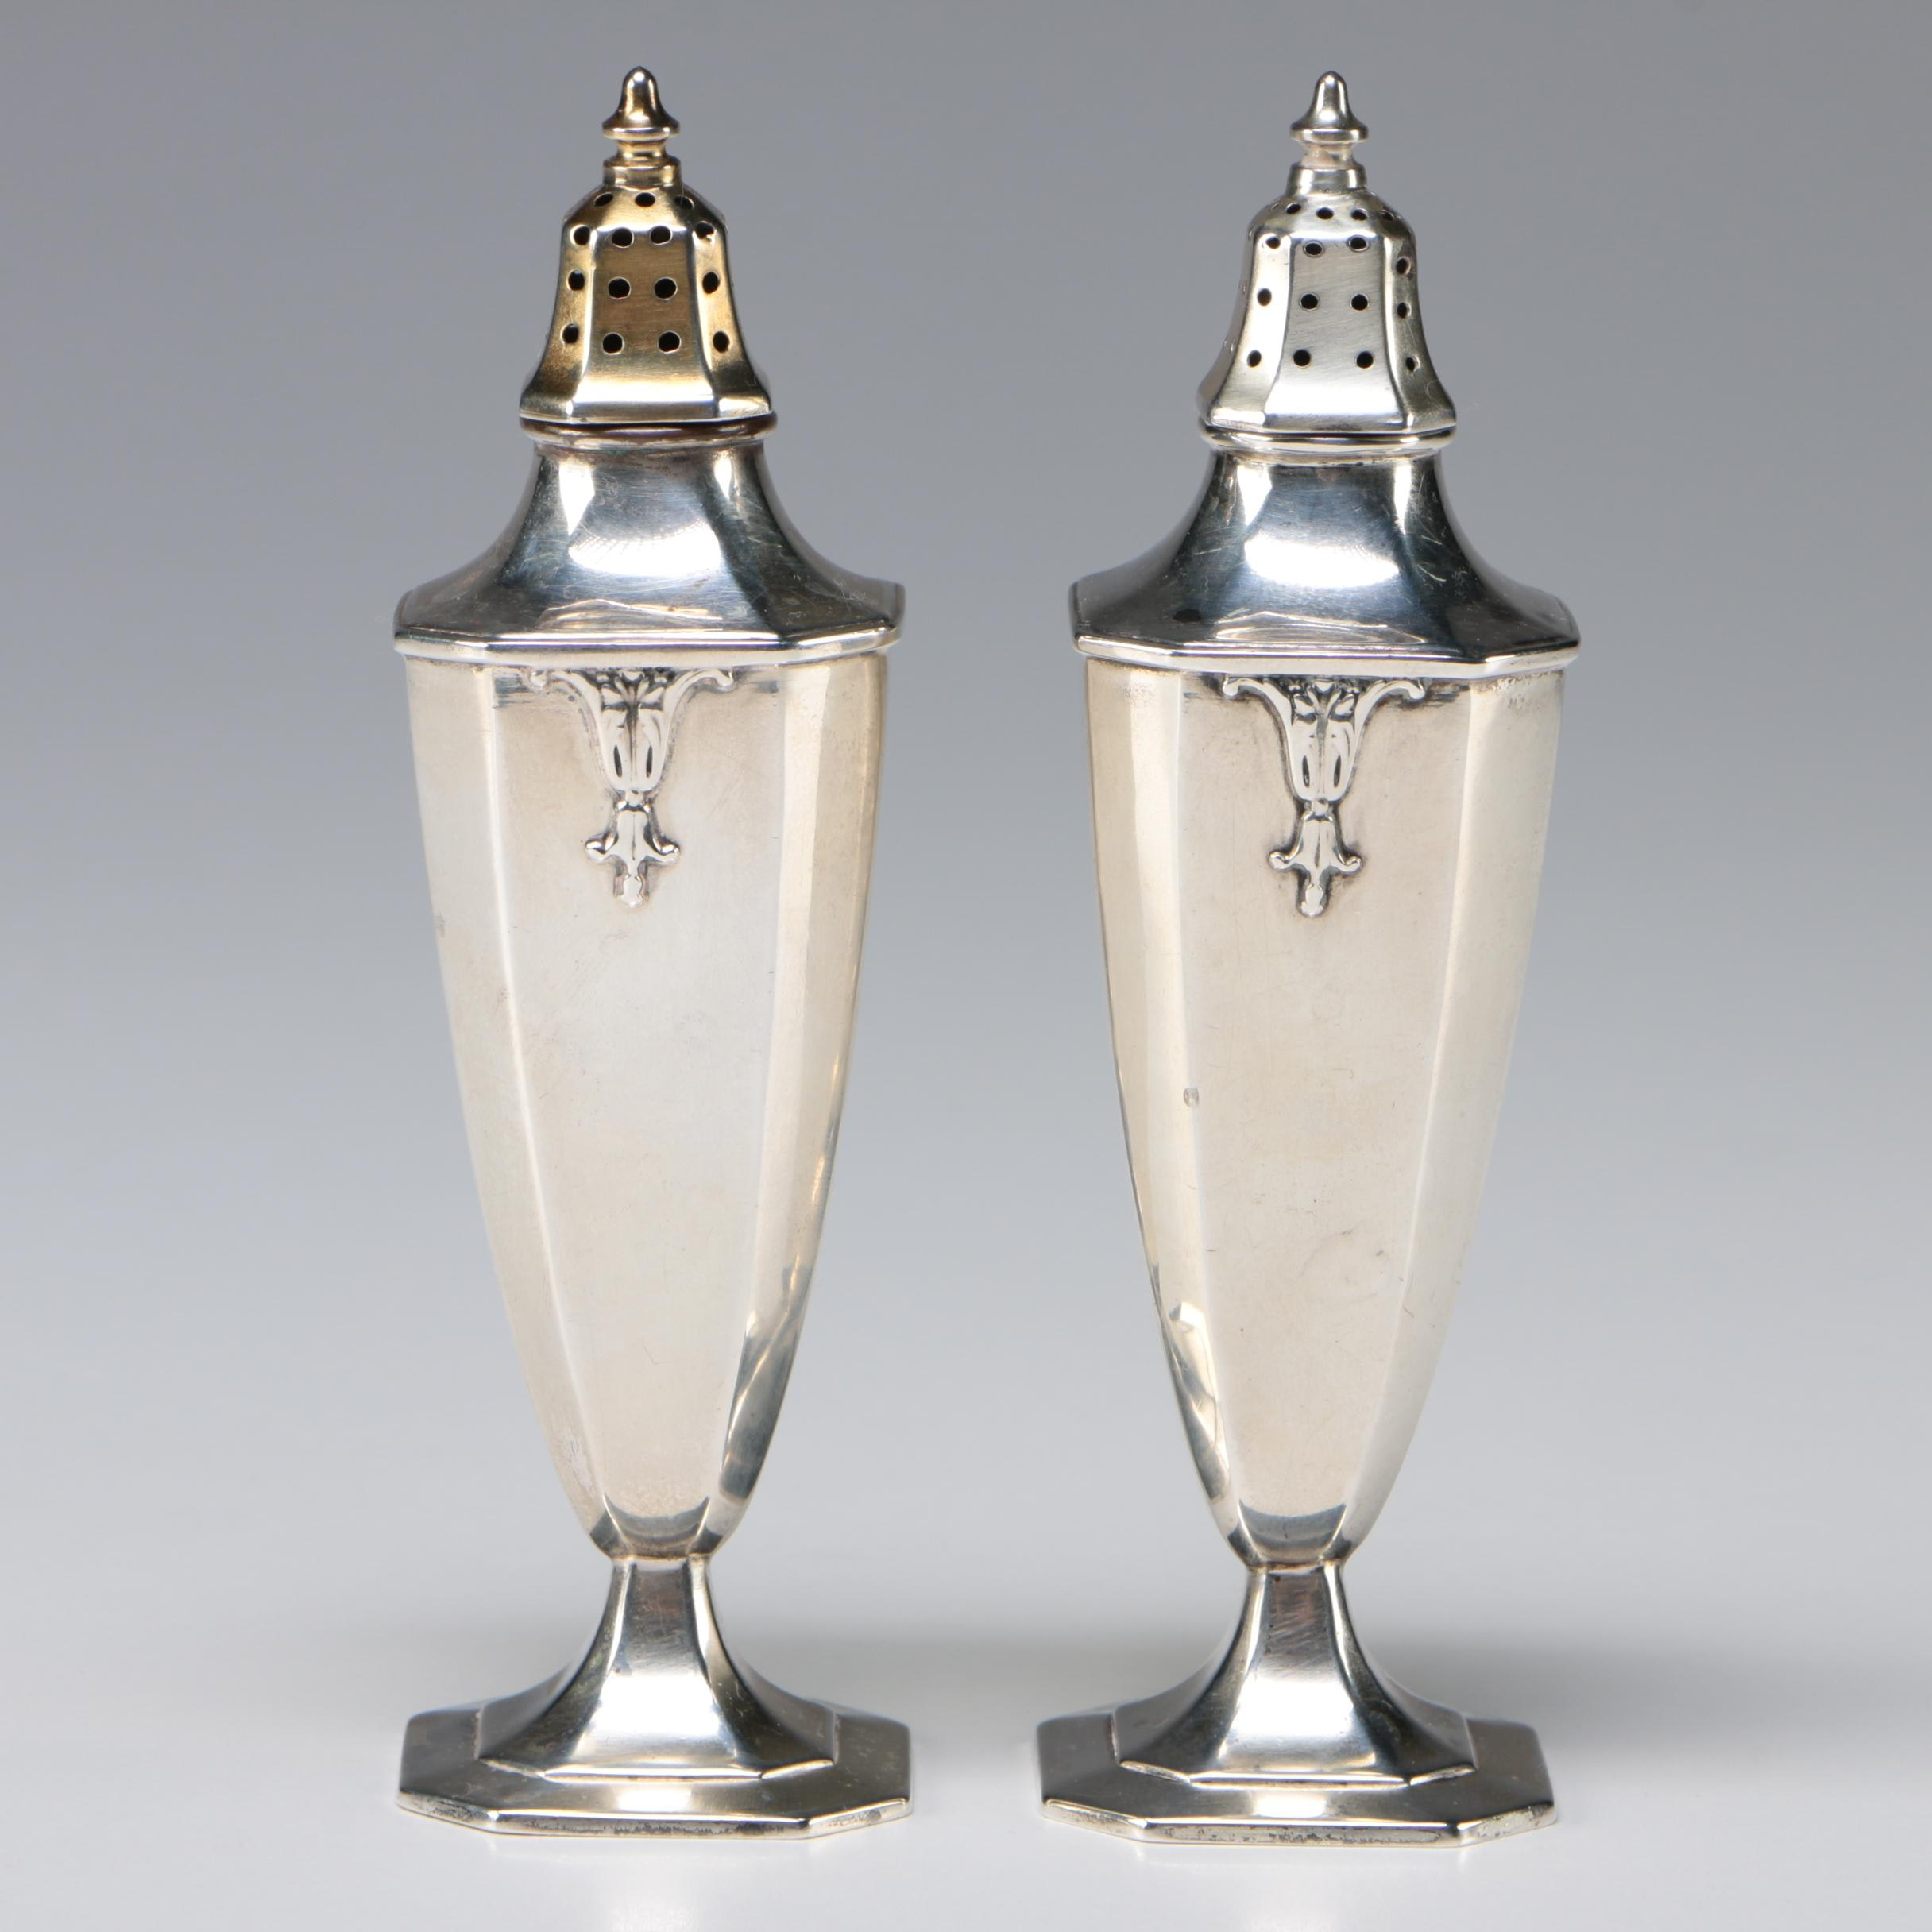 Wallace Sterling Salt and Pepper Shakers